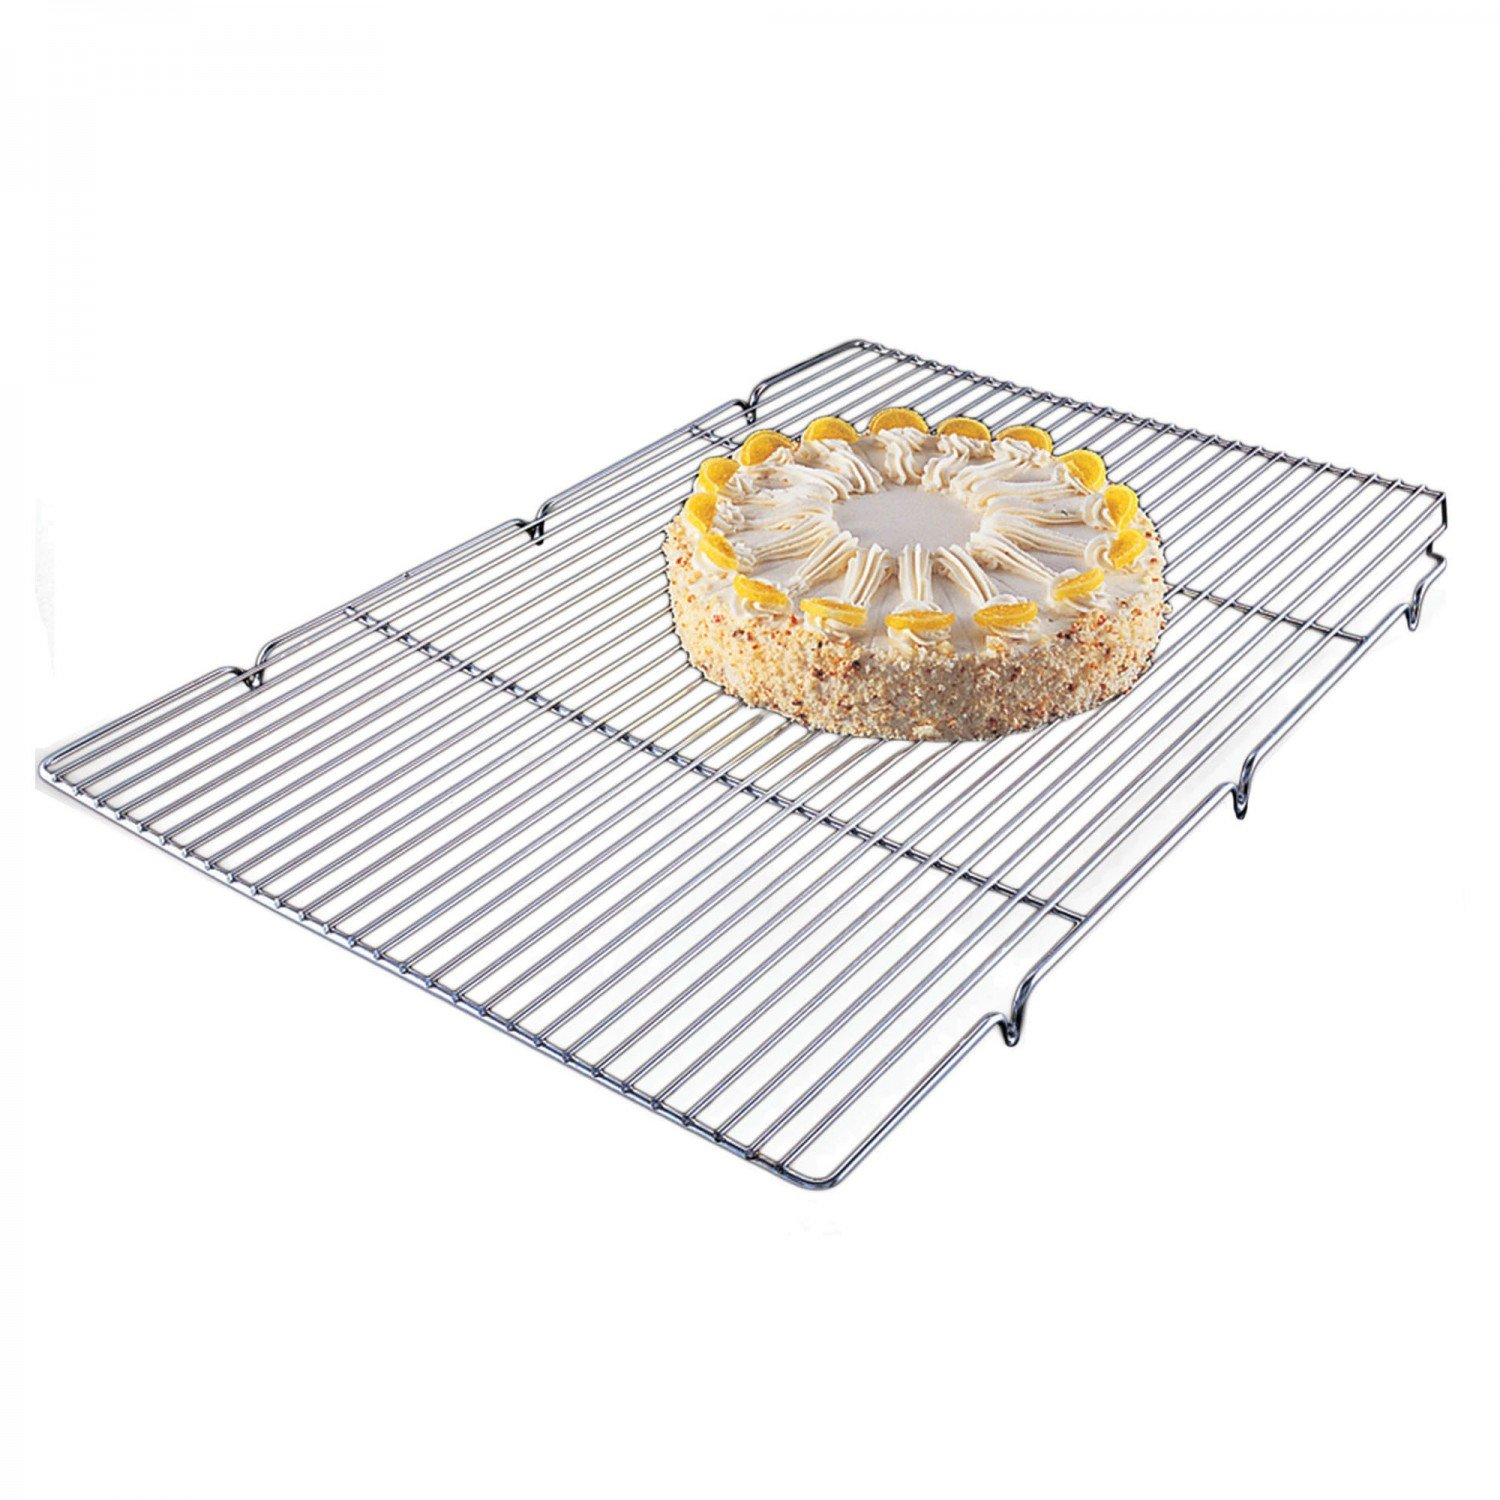 Focus Foodservice 301WS Cooling Grate With Integrated Feet, 16-1/2'' x 24-1/2'' x 1'', Chrome Plated